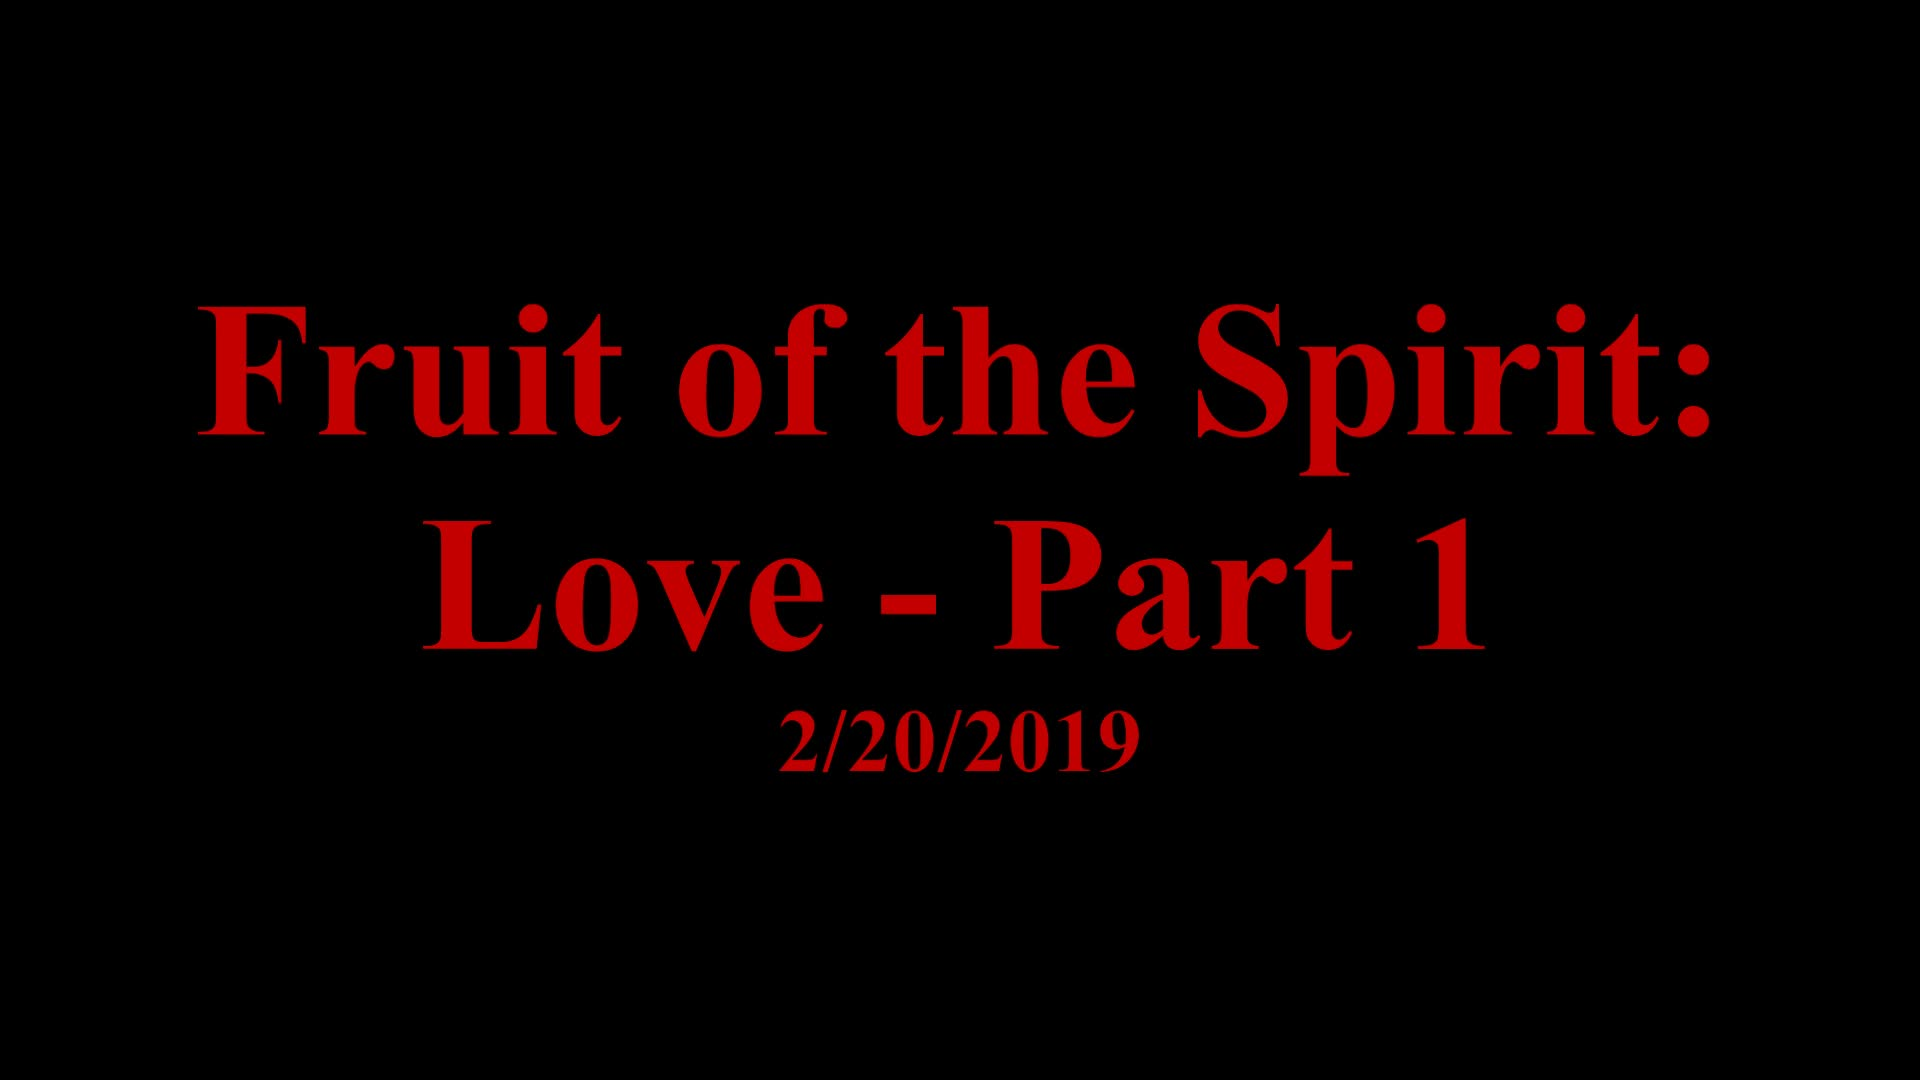 Fruit of the Spirit: Love Part 1